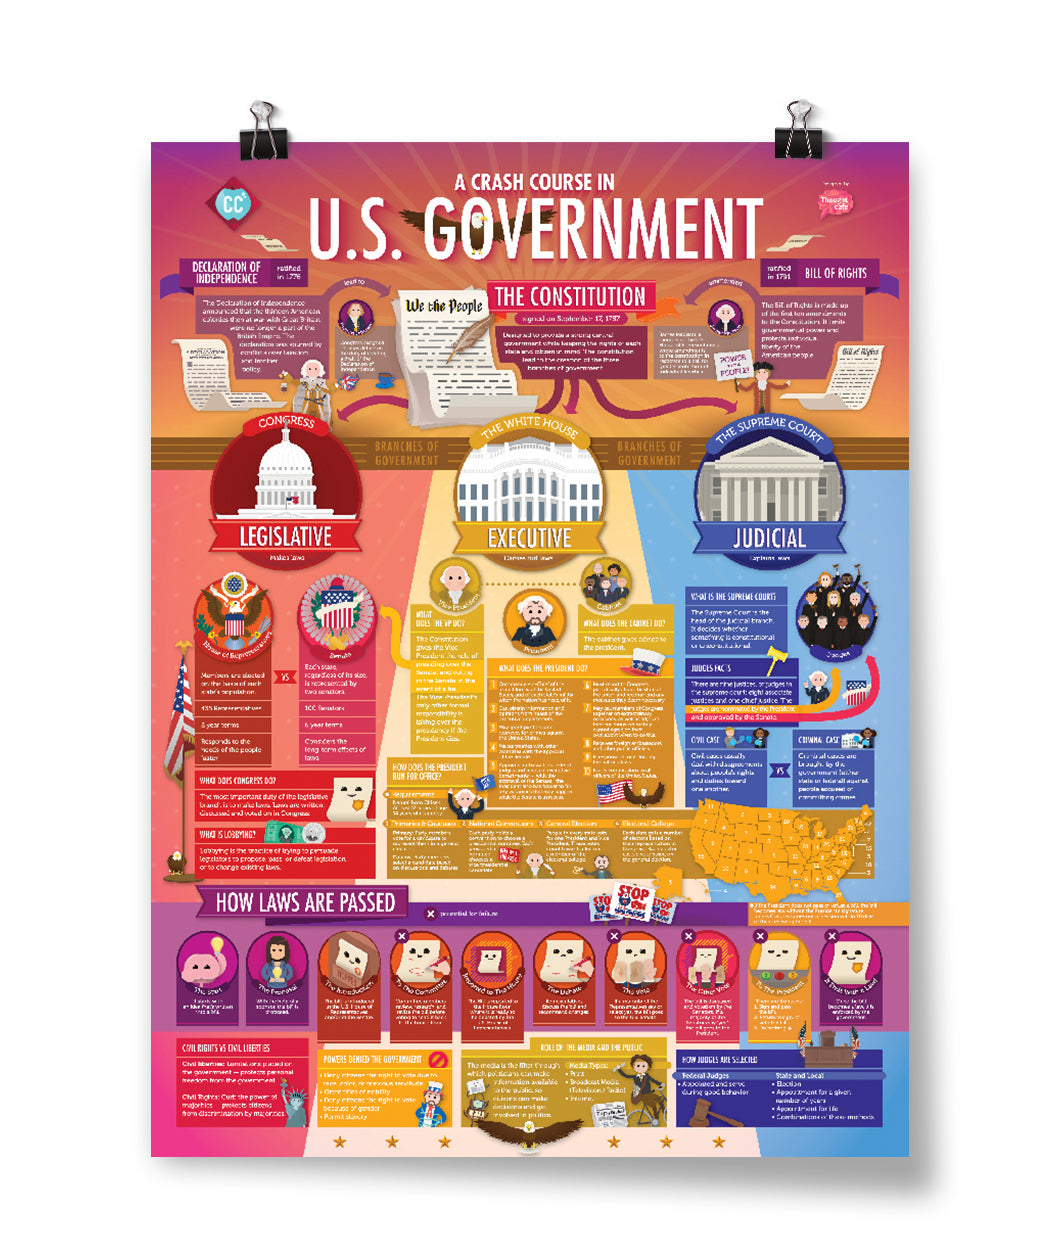 Crash Course U.S. Government Poster